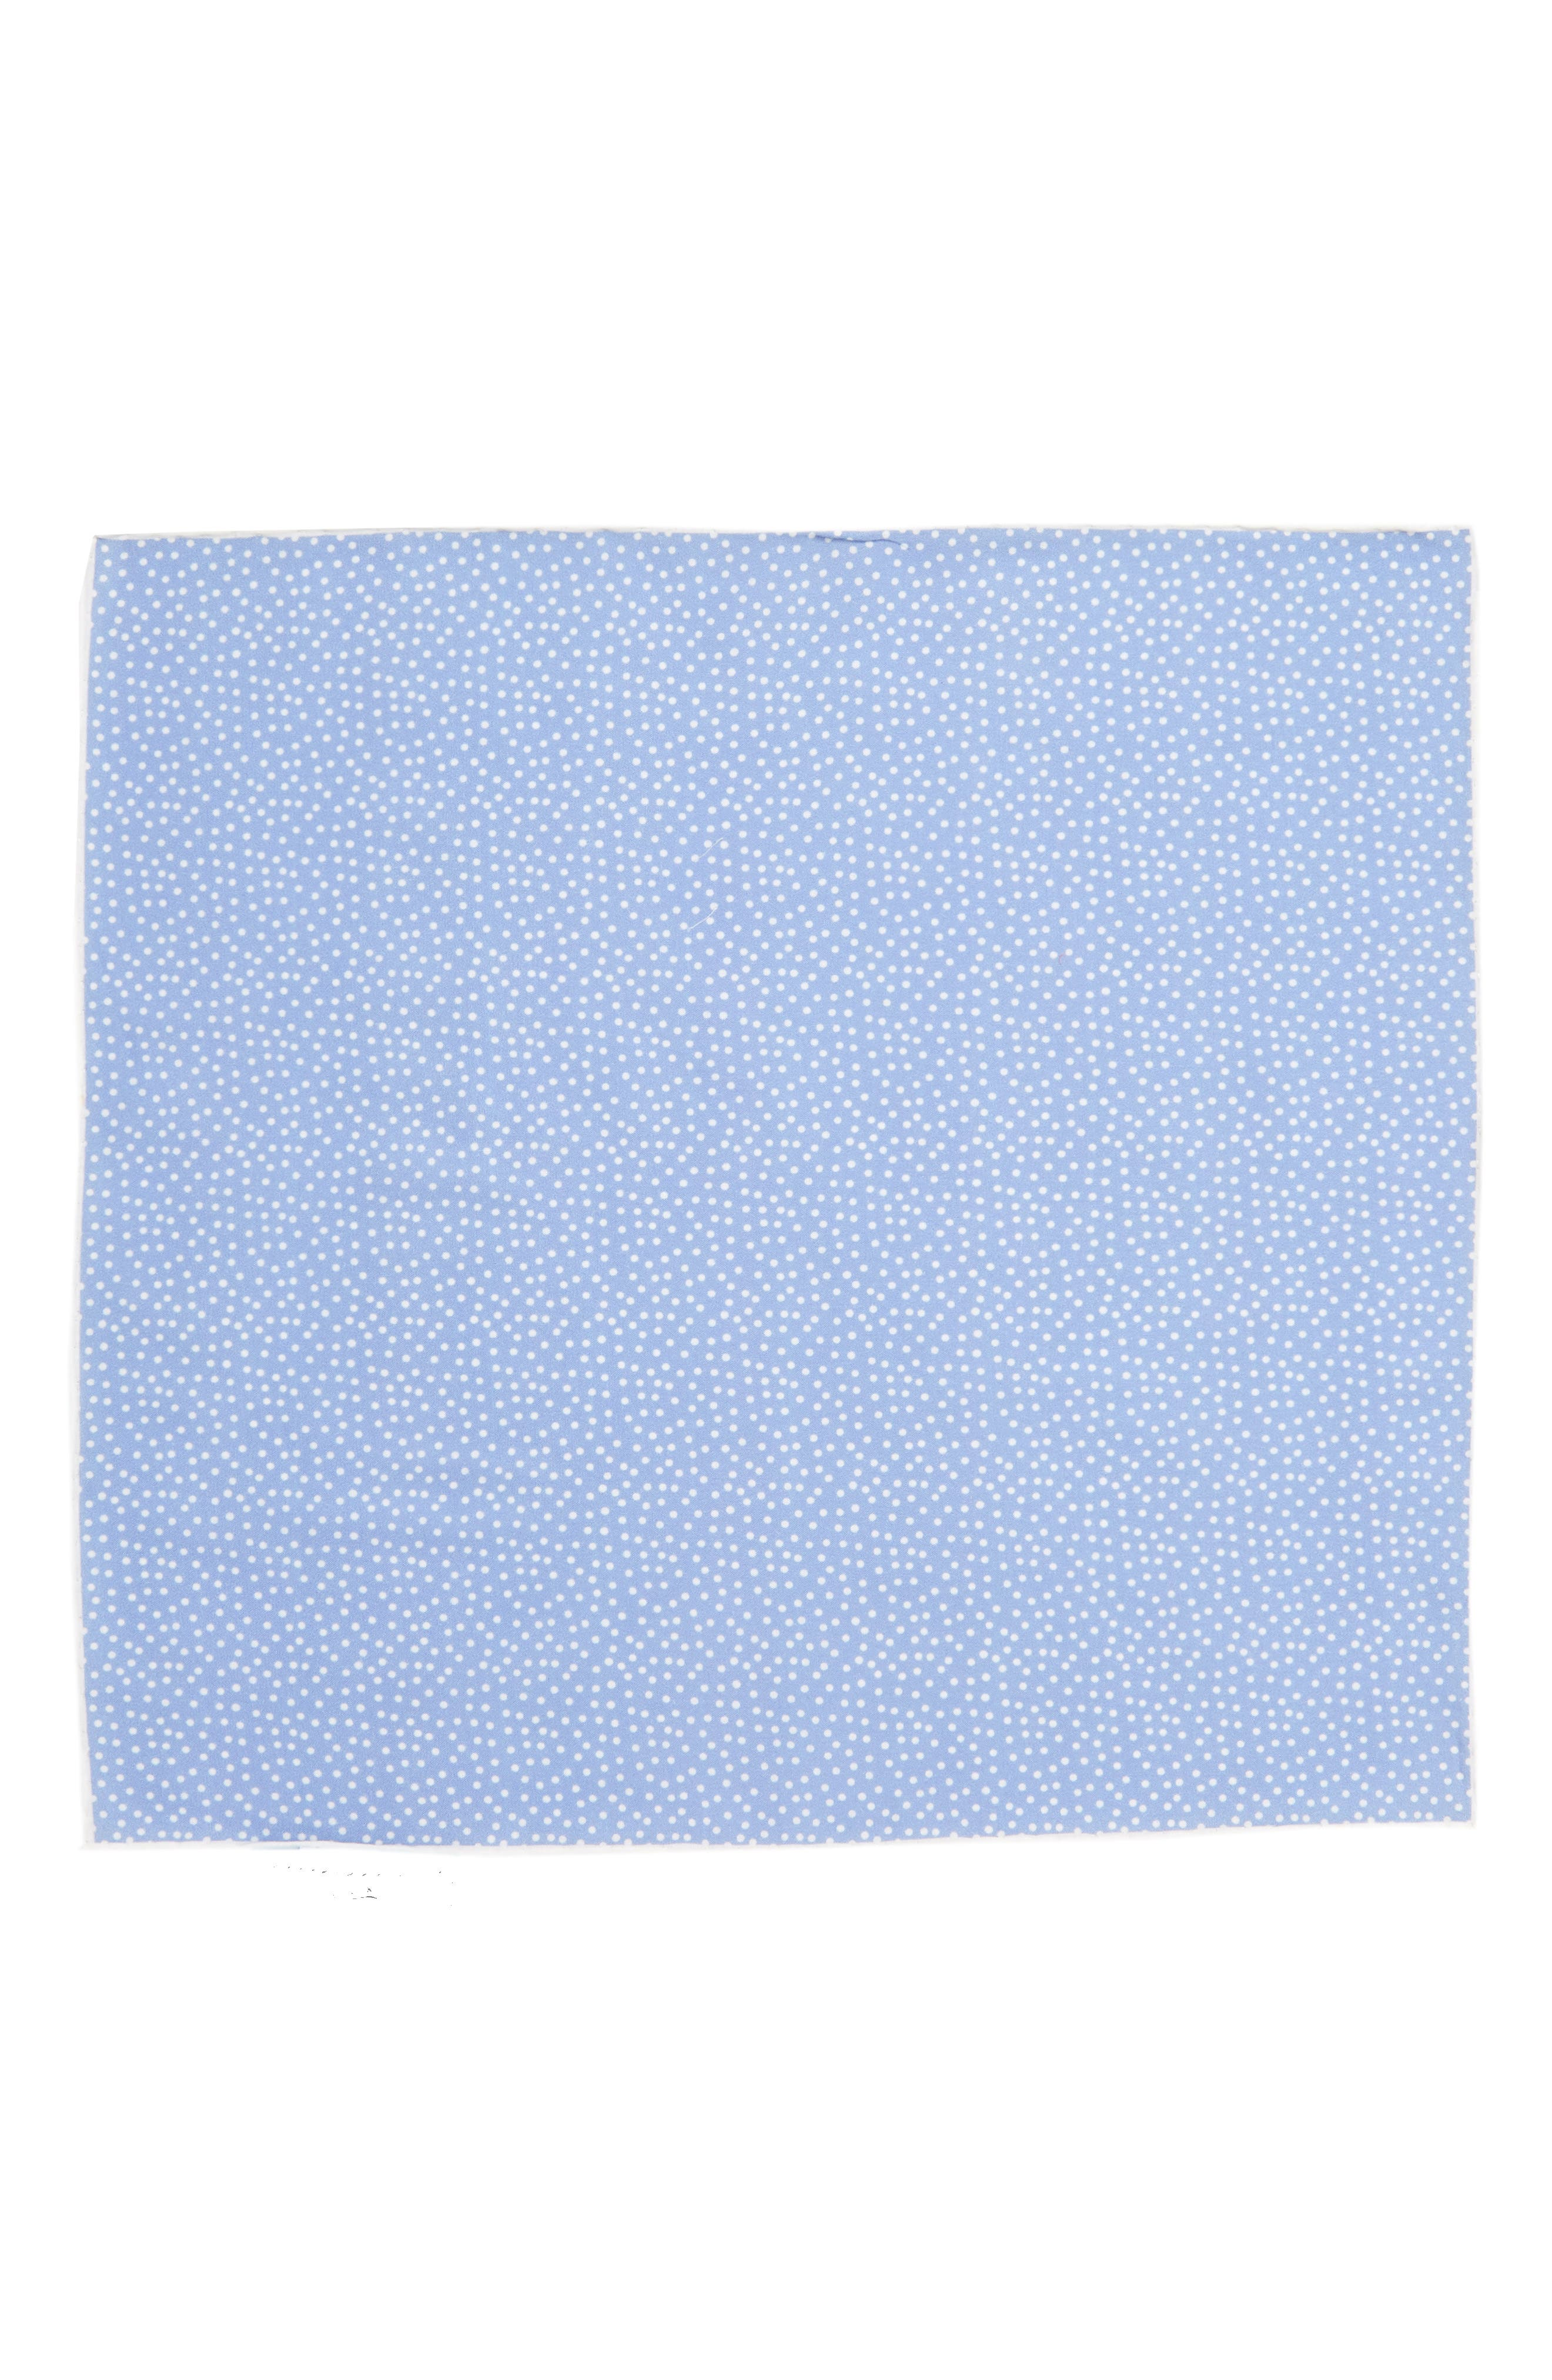 SOUTHERN TIDE,                             Sagamore Spots Cotton & Silk Pocket Square,                             Alternate thumbnail 2, color,                             BLUE